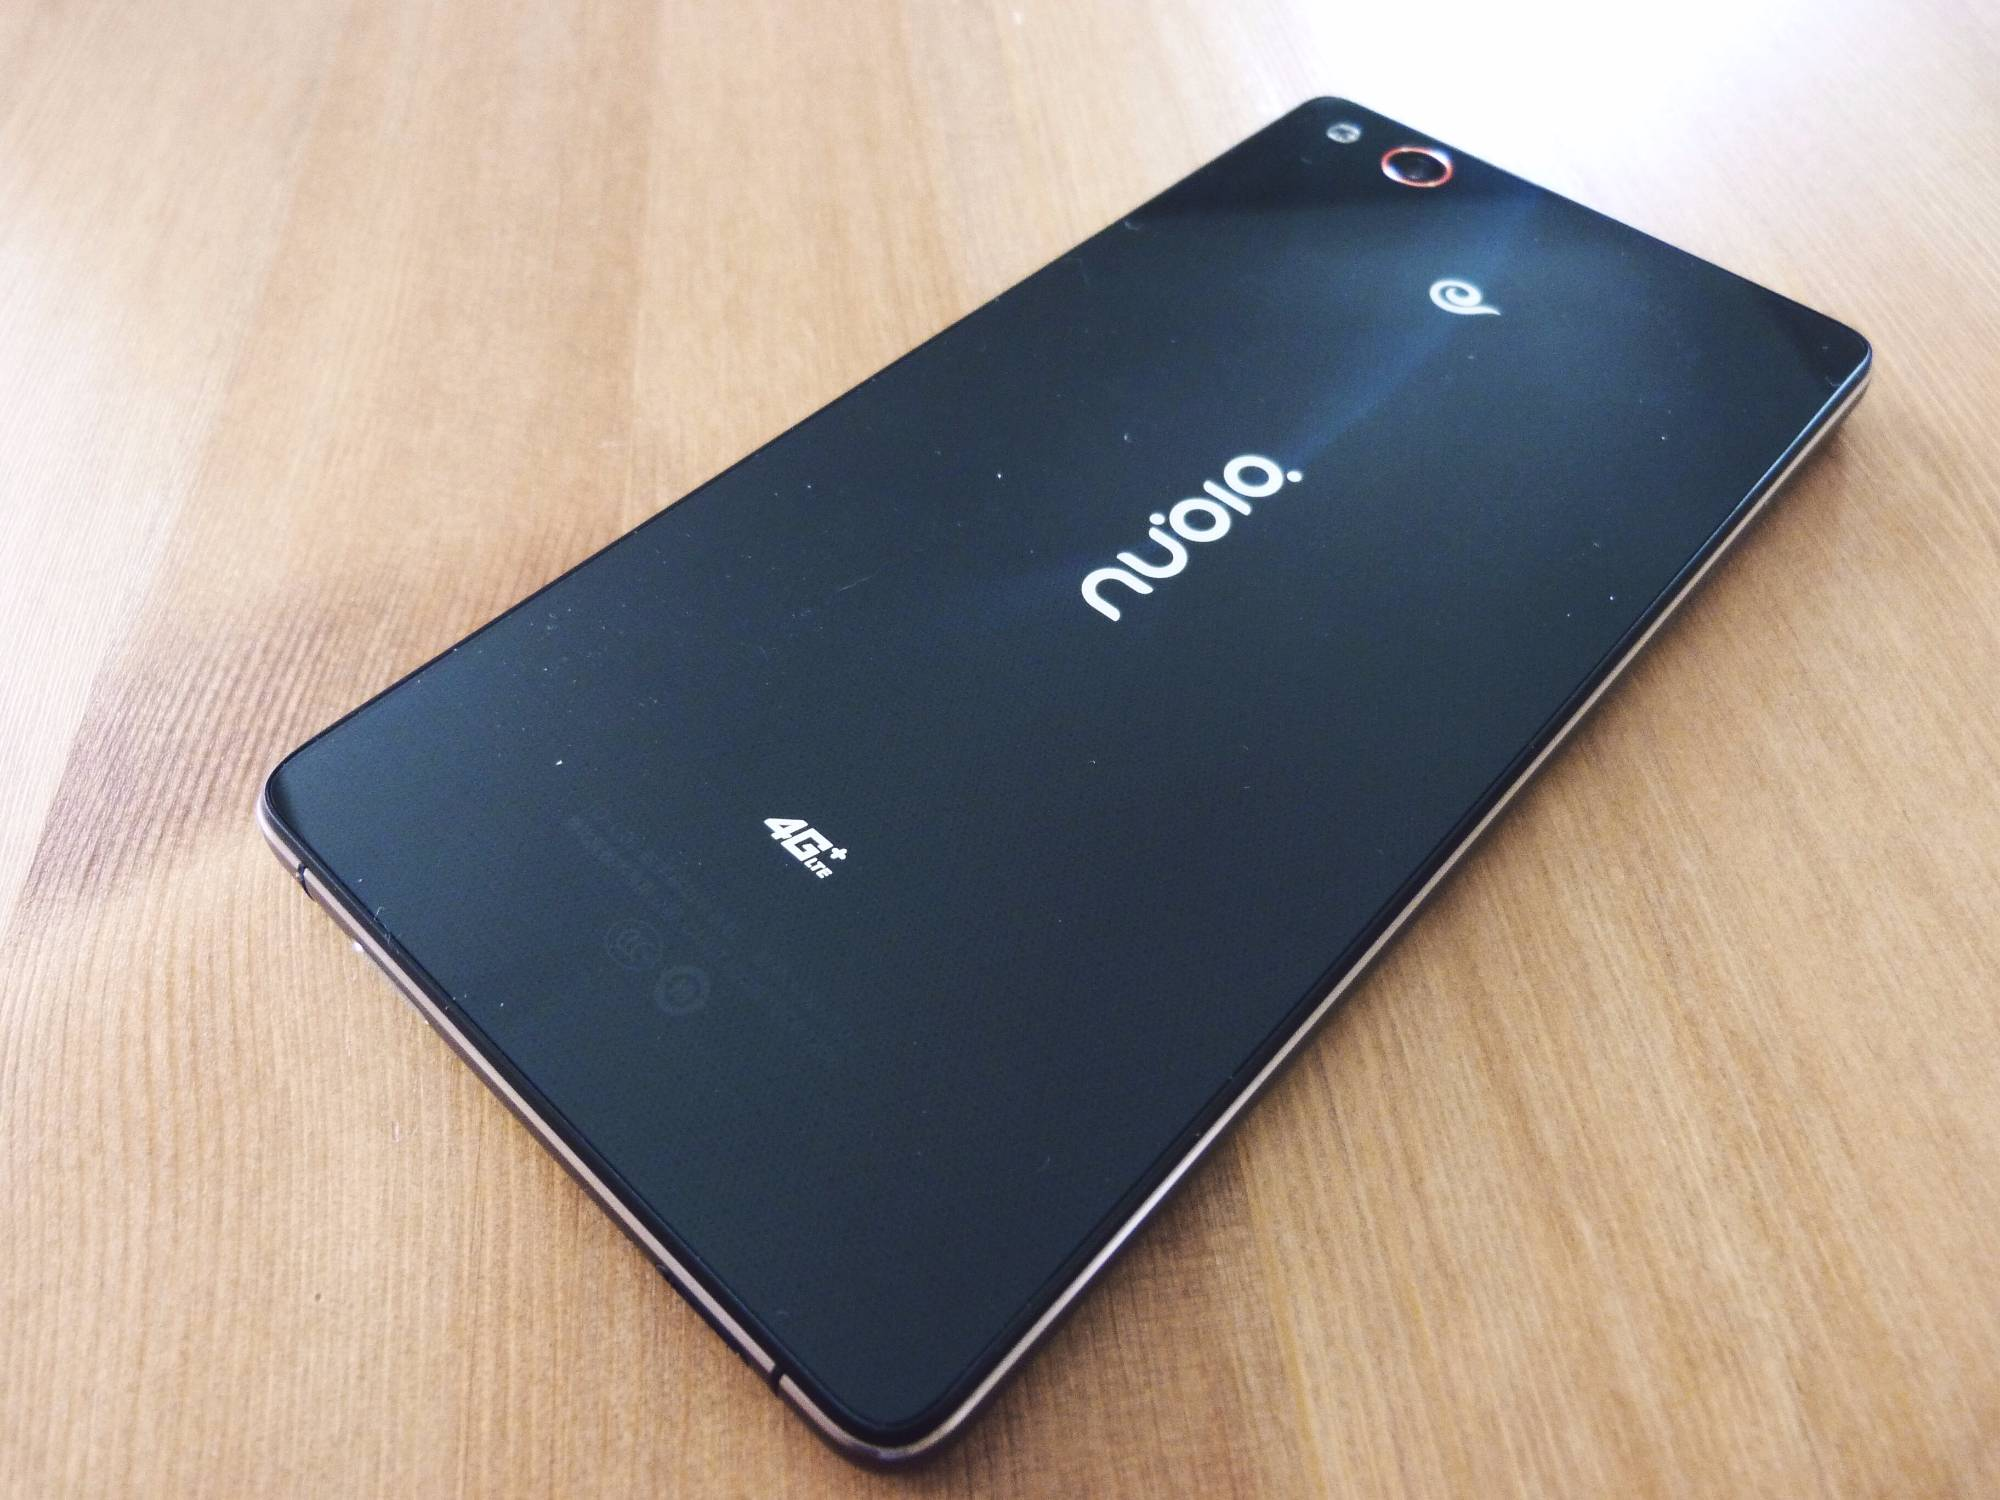 Review The Zte Nubia Z9 Max Is A Phone Of Contradictions